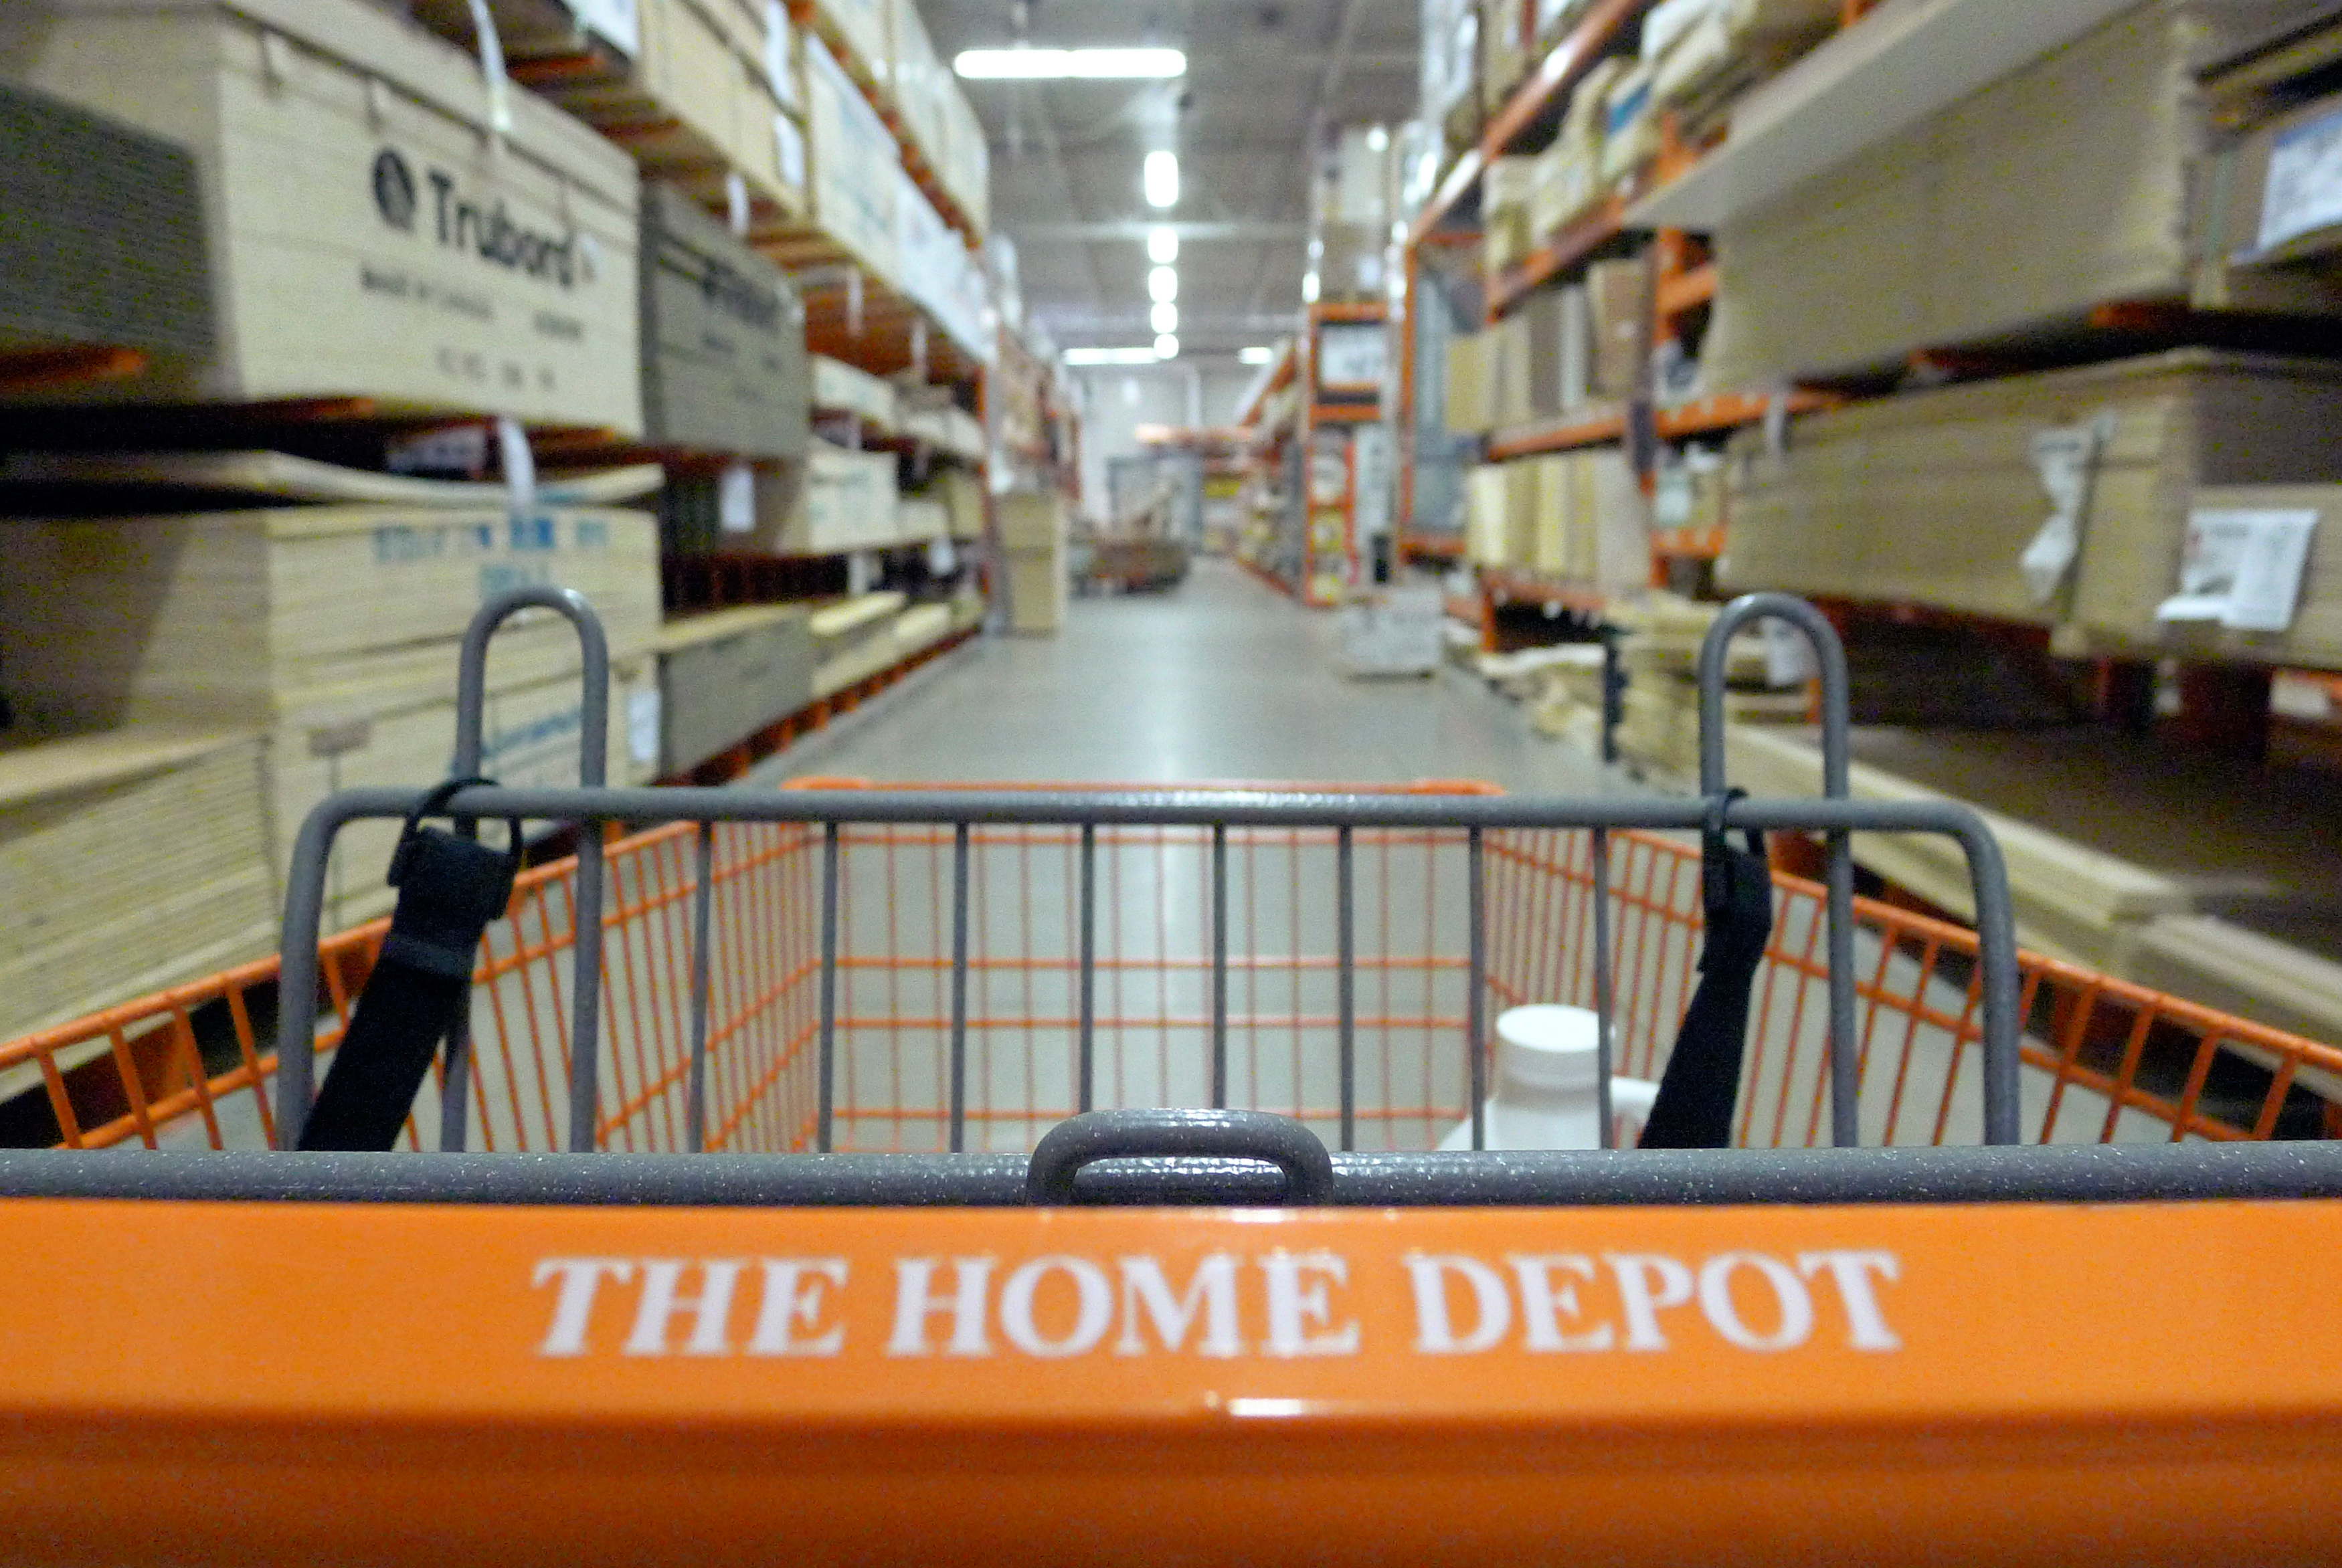 A shopping cart is seen in a Home Depot location in Niles, Illinois, May 19, 2014.